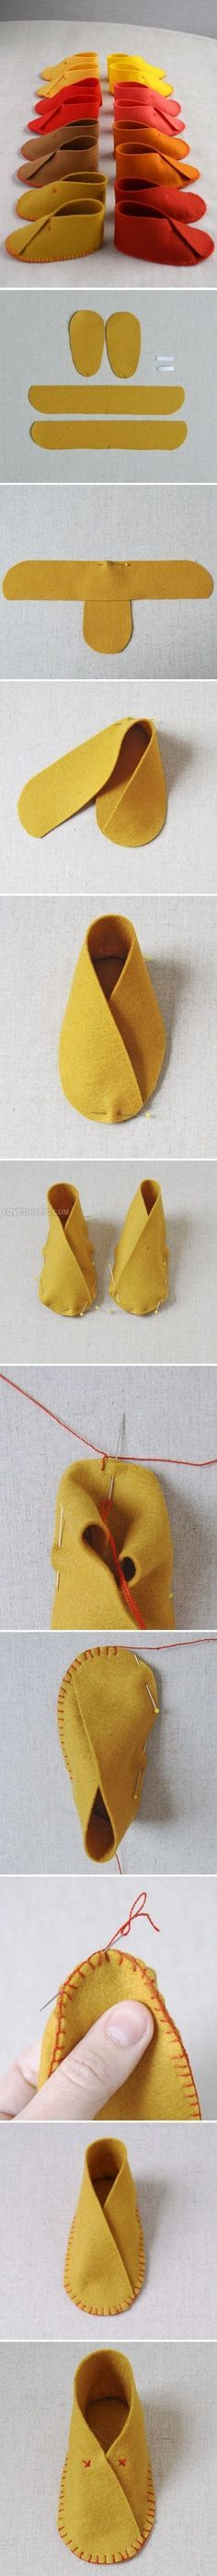 DIY Baby Shoes - Well, crap, even I could do that. And Kadie would love to do it with me!